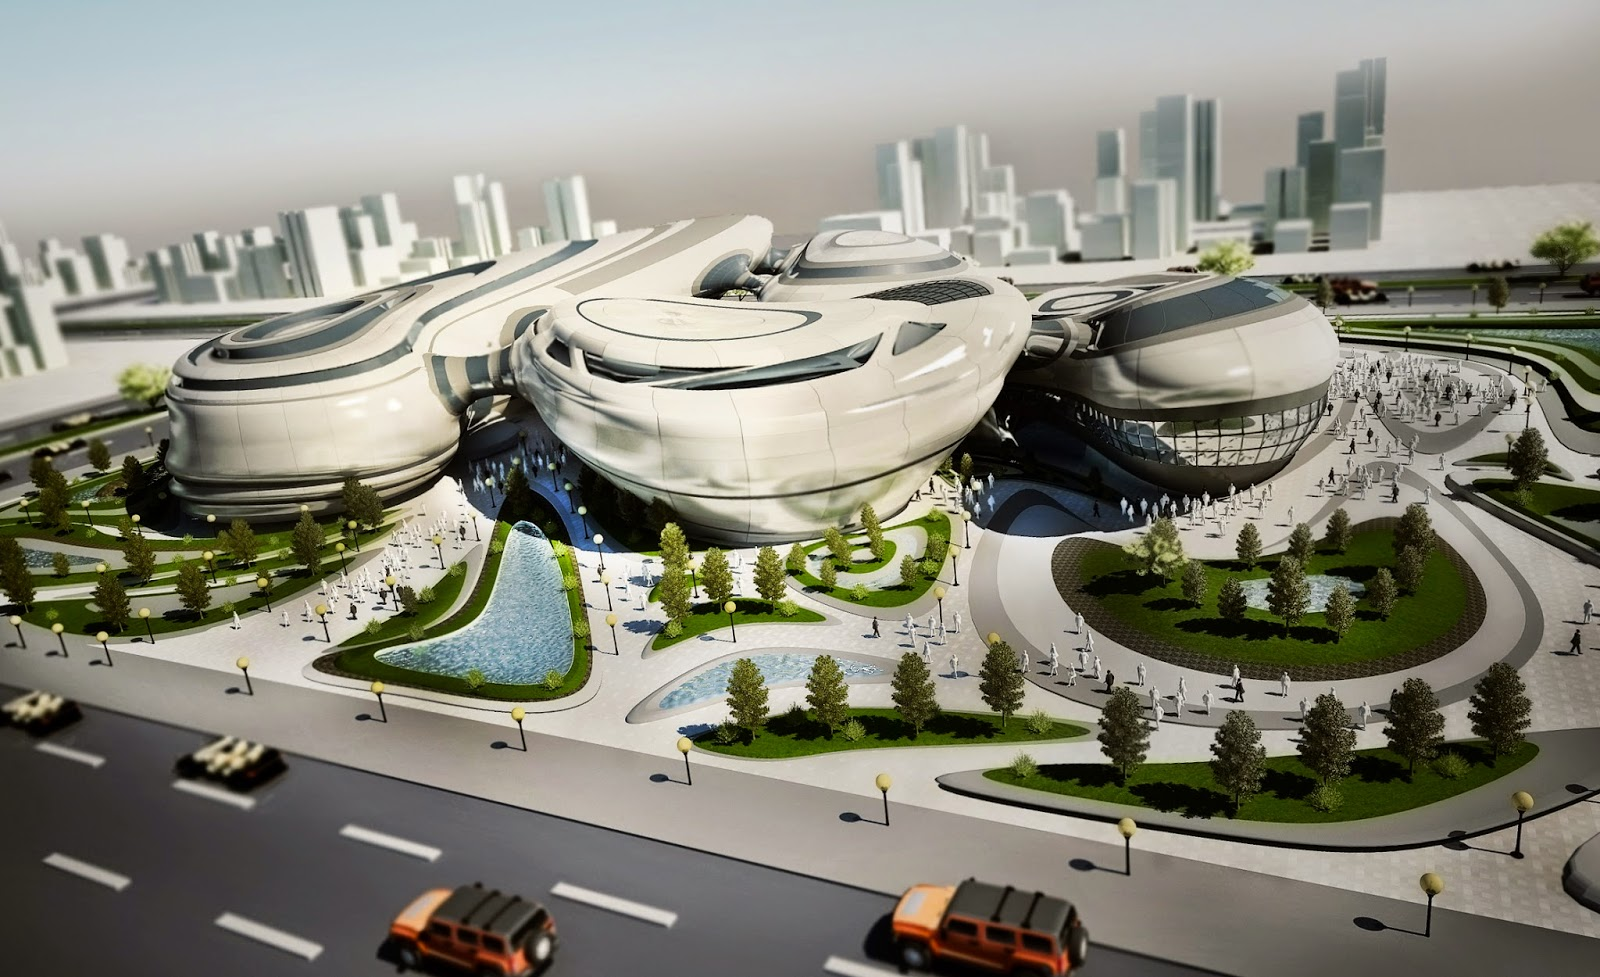 Space race museum islam fikry abbas architecture for Importance of space in architecture